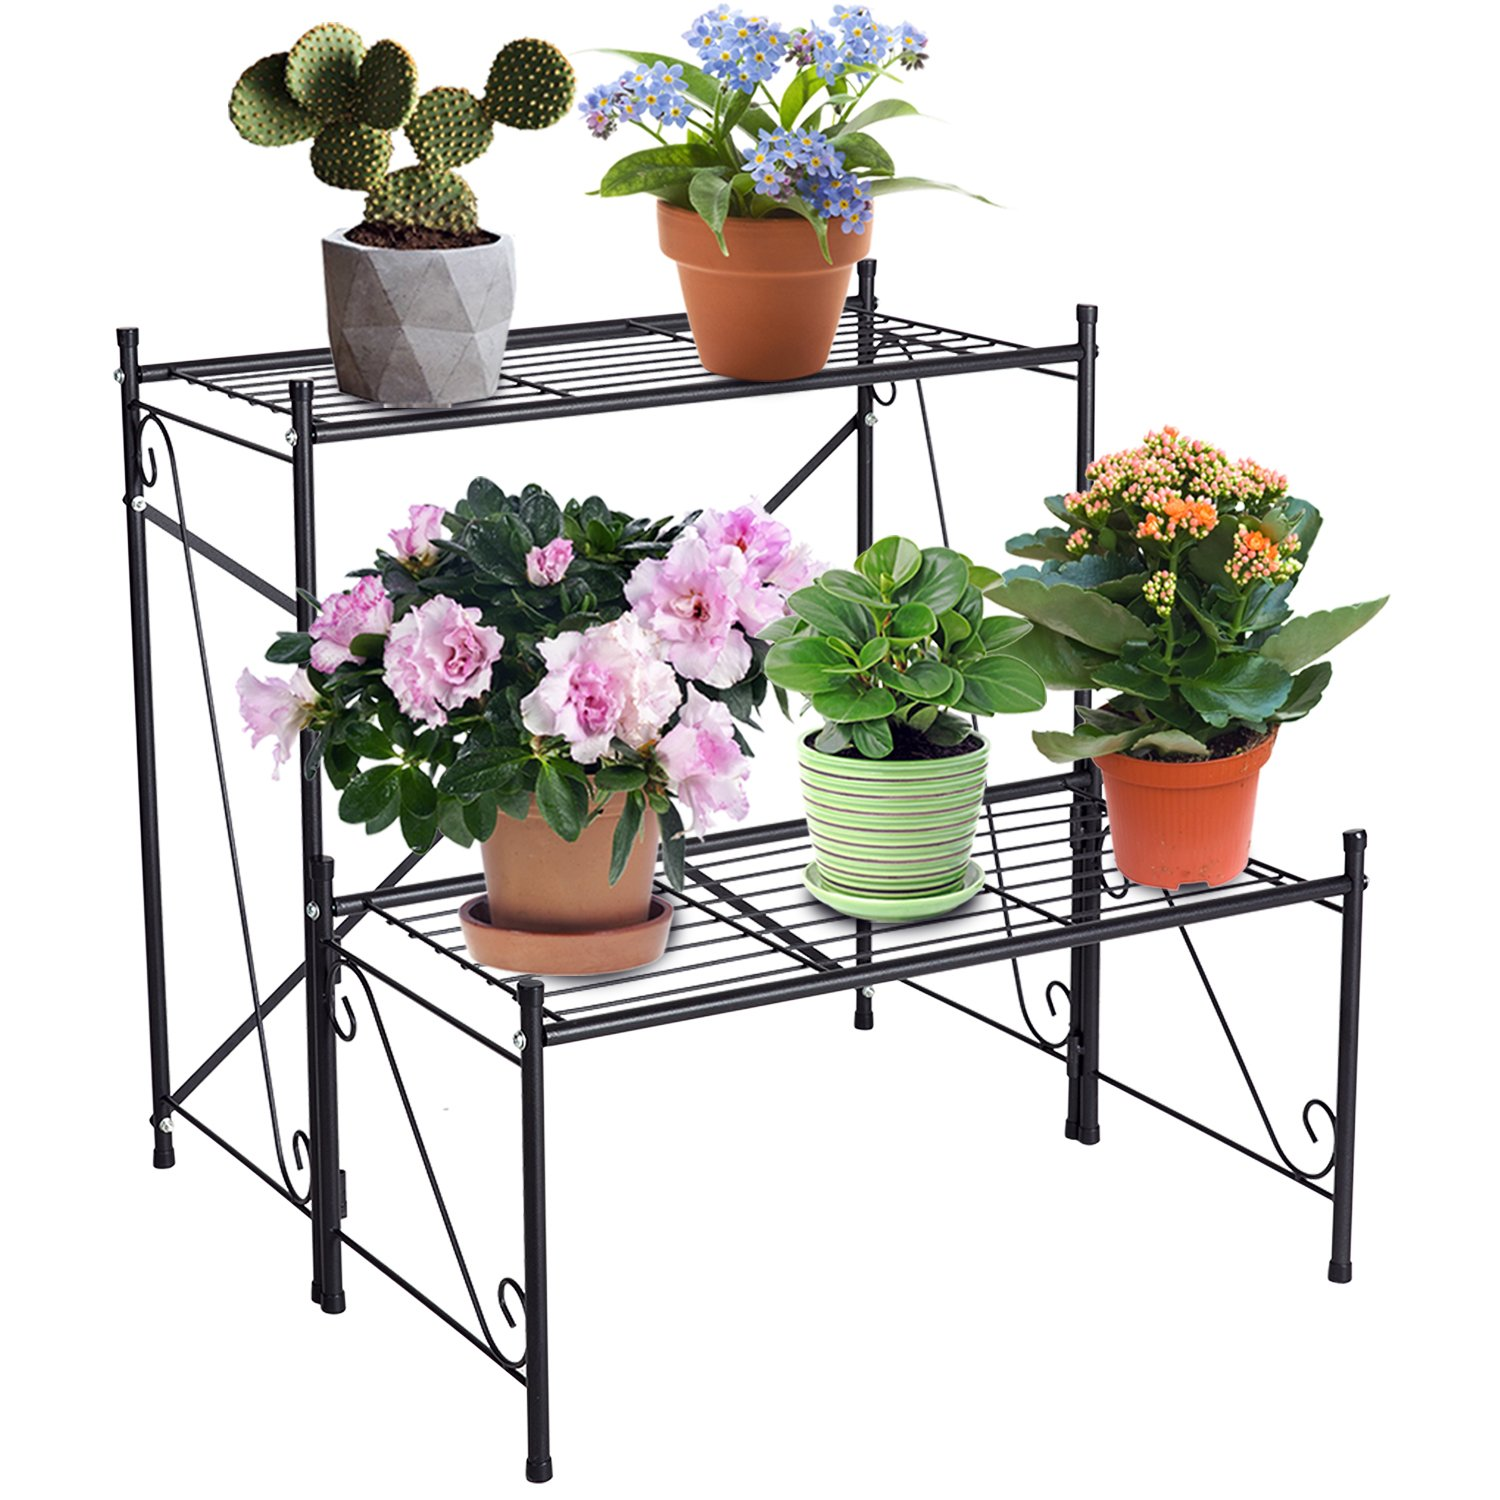 DOEWORKS 2 Tier Metal Plant Stand Storage Rack Shelf, Flower Pot Holder Display Shelf, Black